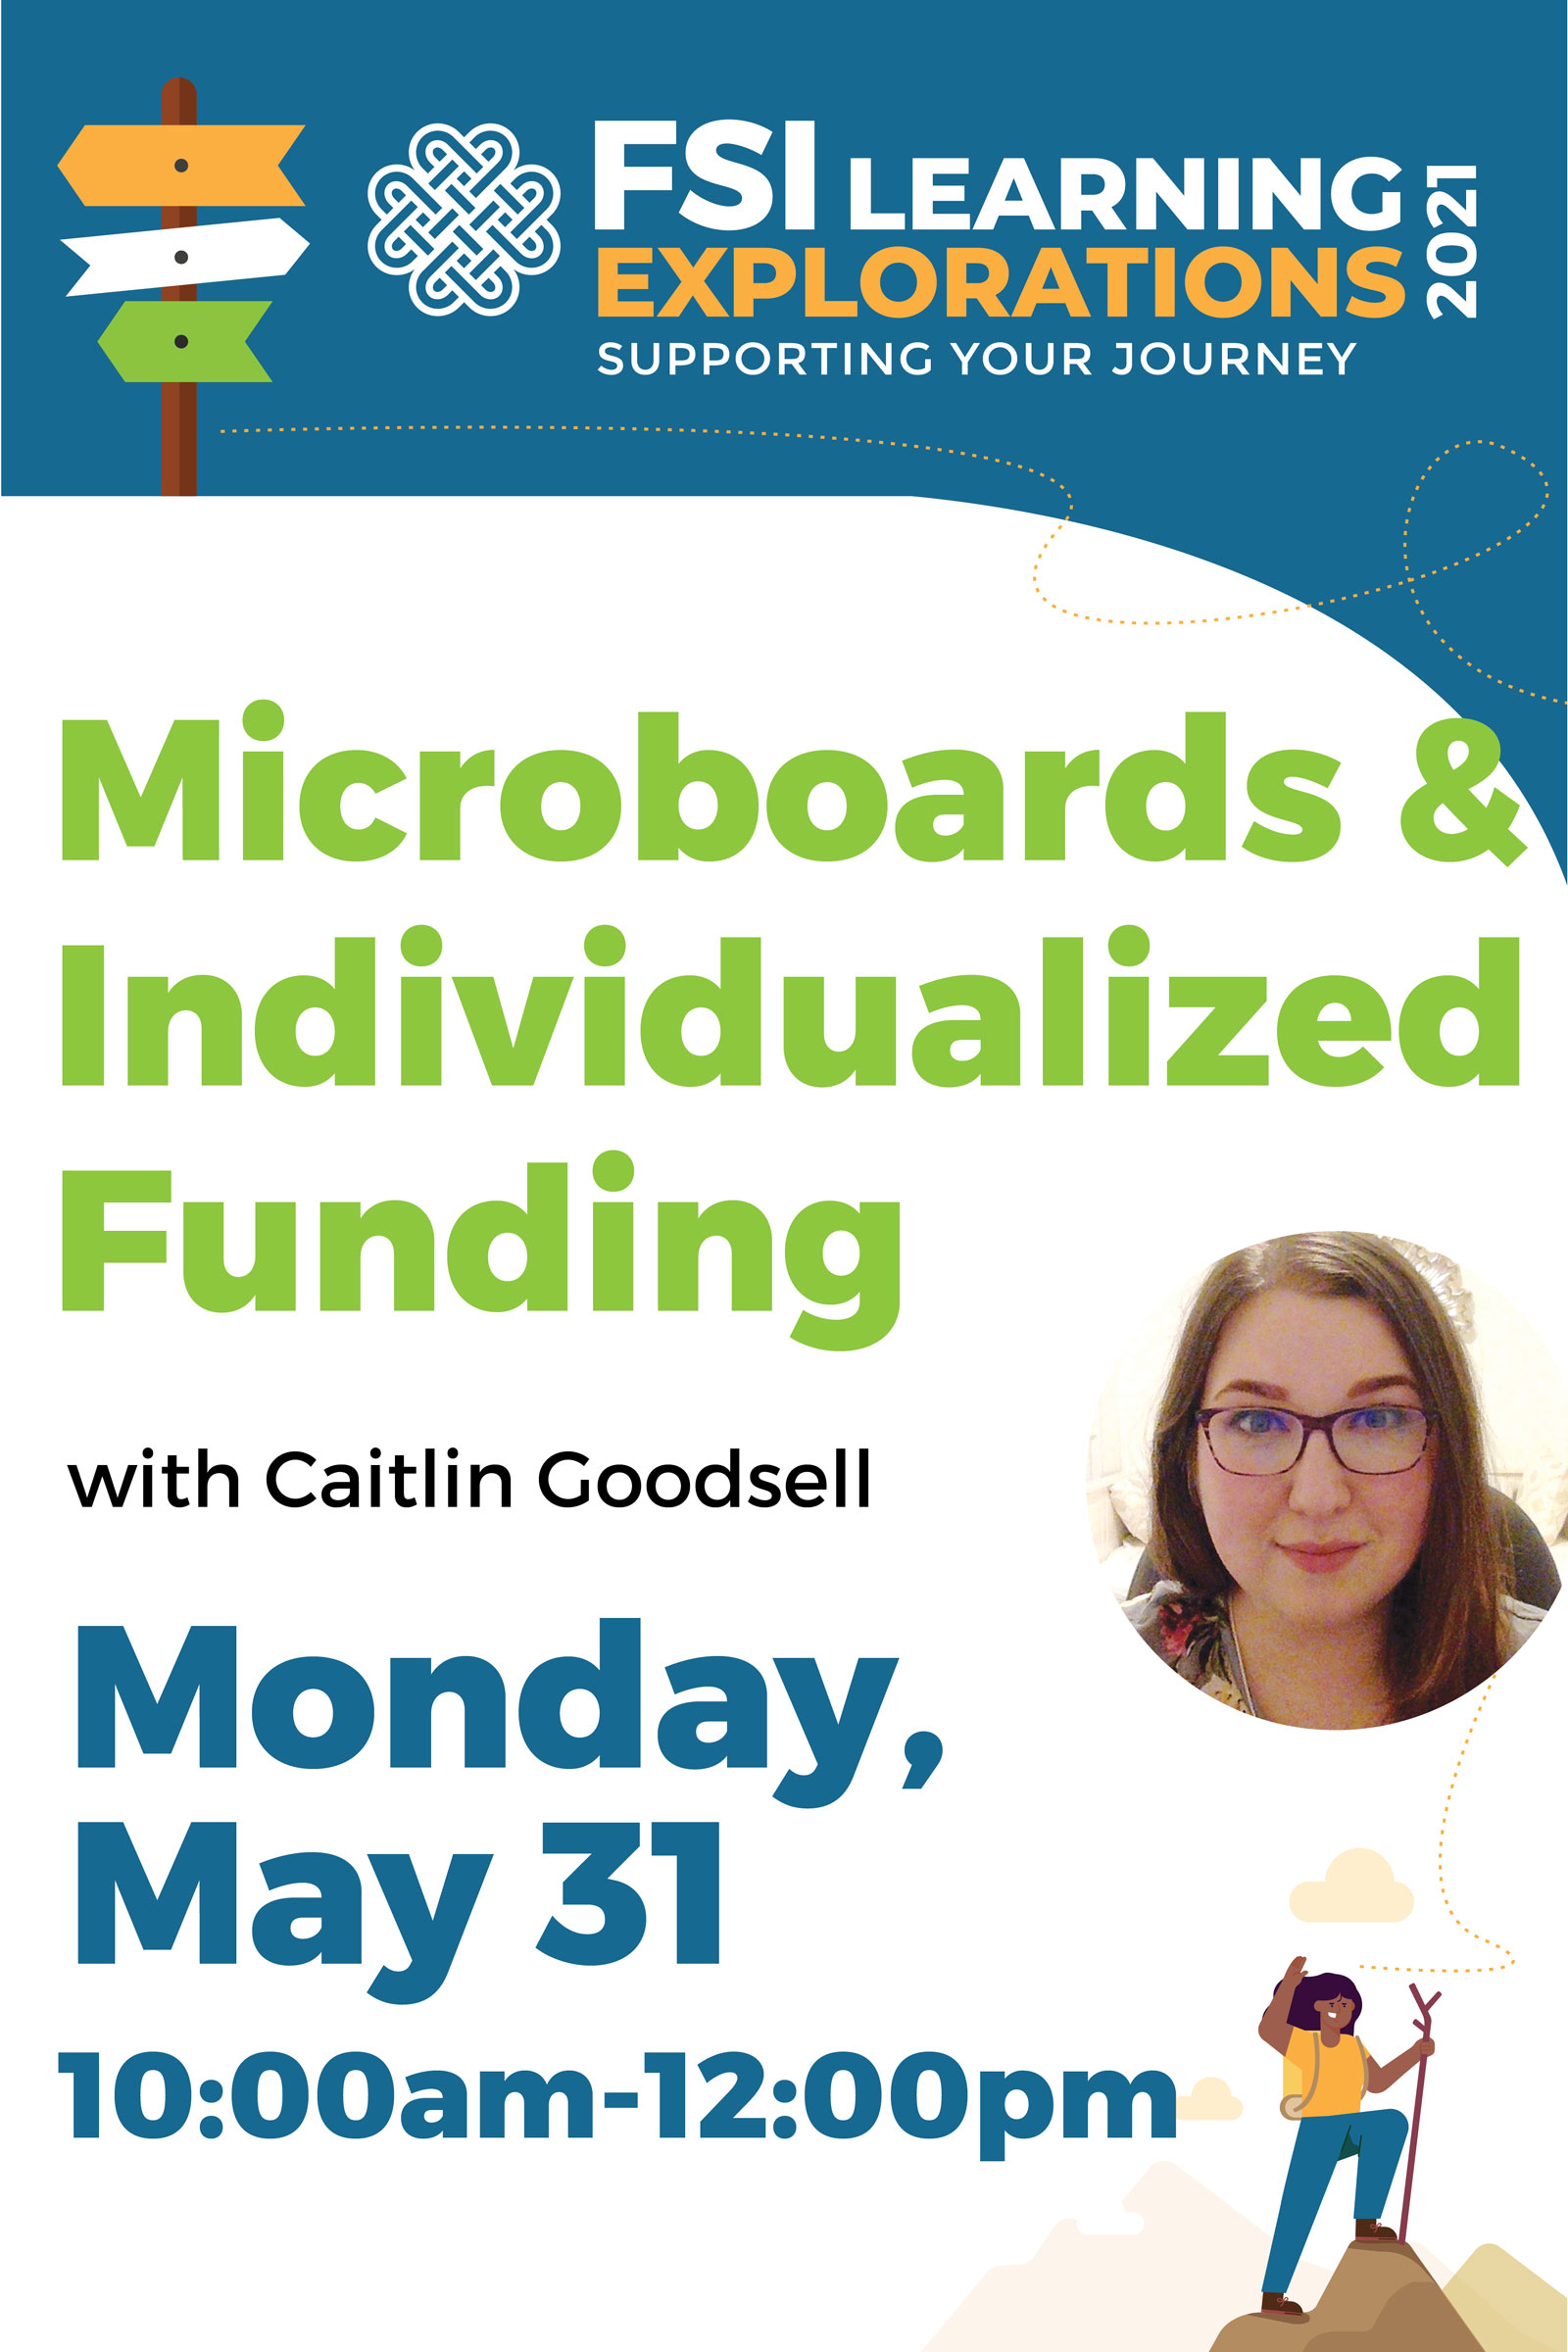 FSI Learning Explorations - Microboards and Individualized Funding